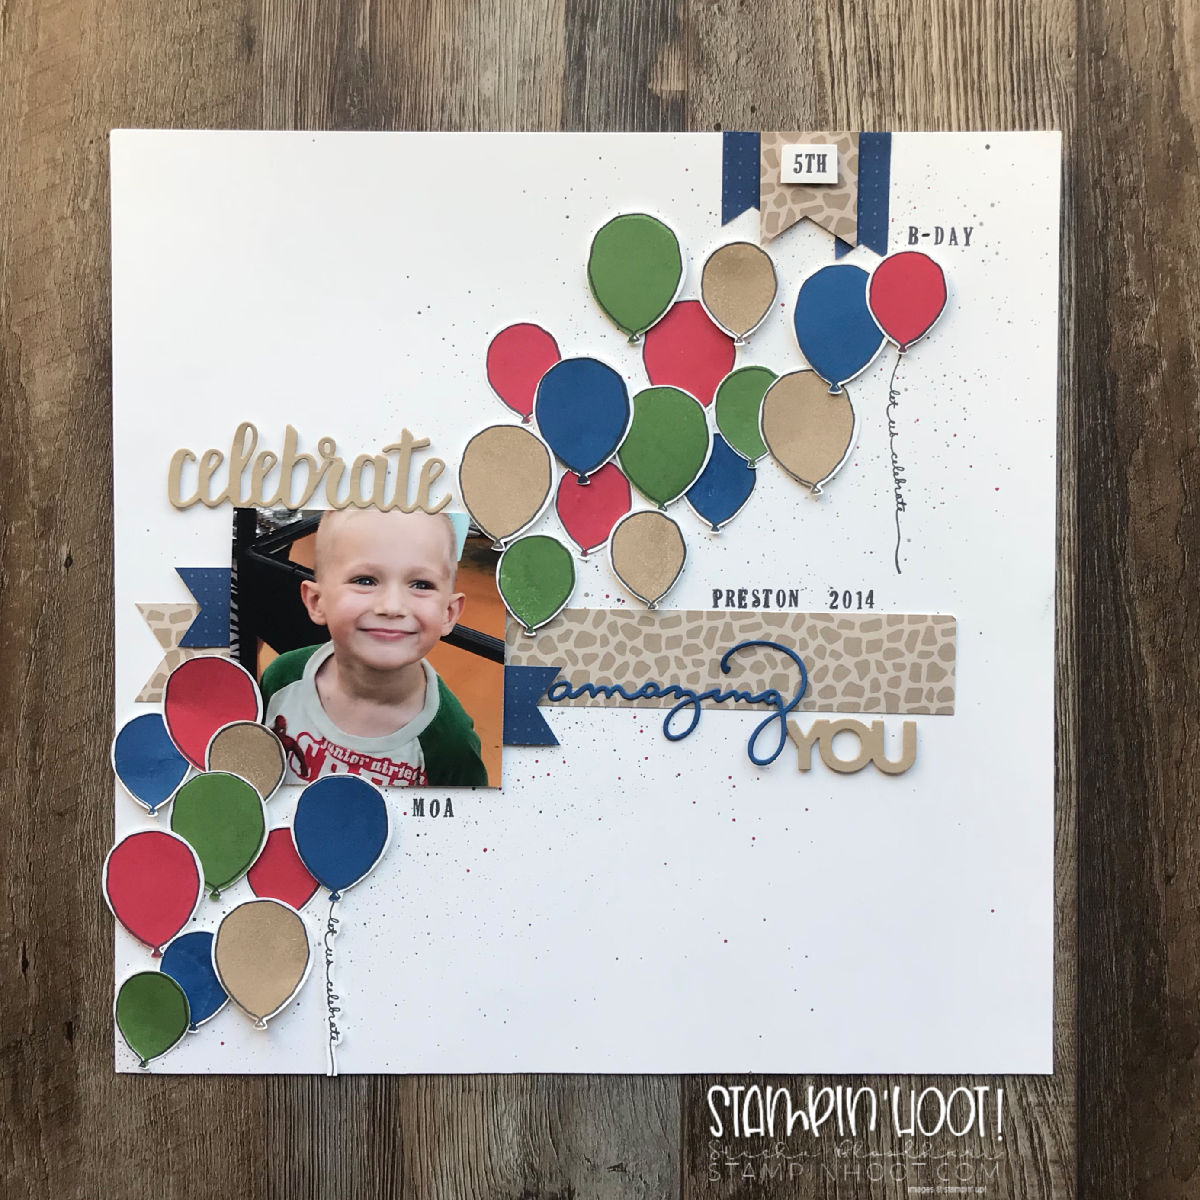 Celebrate Amazing You Scrapbook Page for the Scrapbooking Global Blog Hop October 2018 Scrapbook Page by Stesha Bloodhart, Stampin' Hoot!